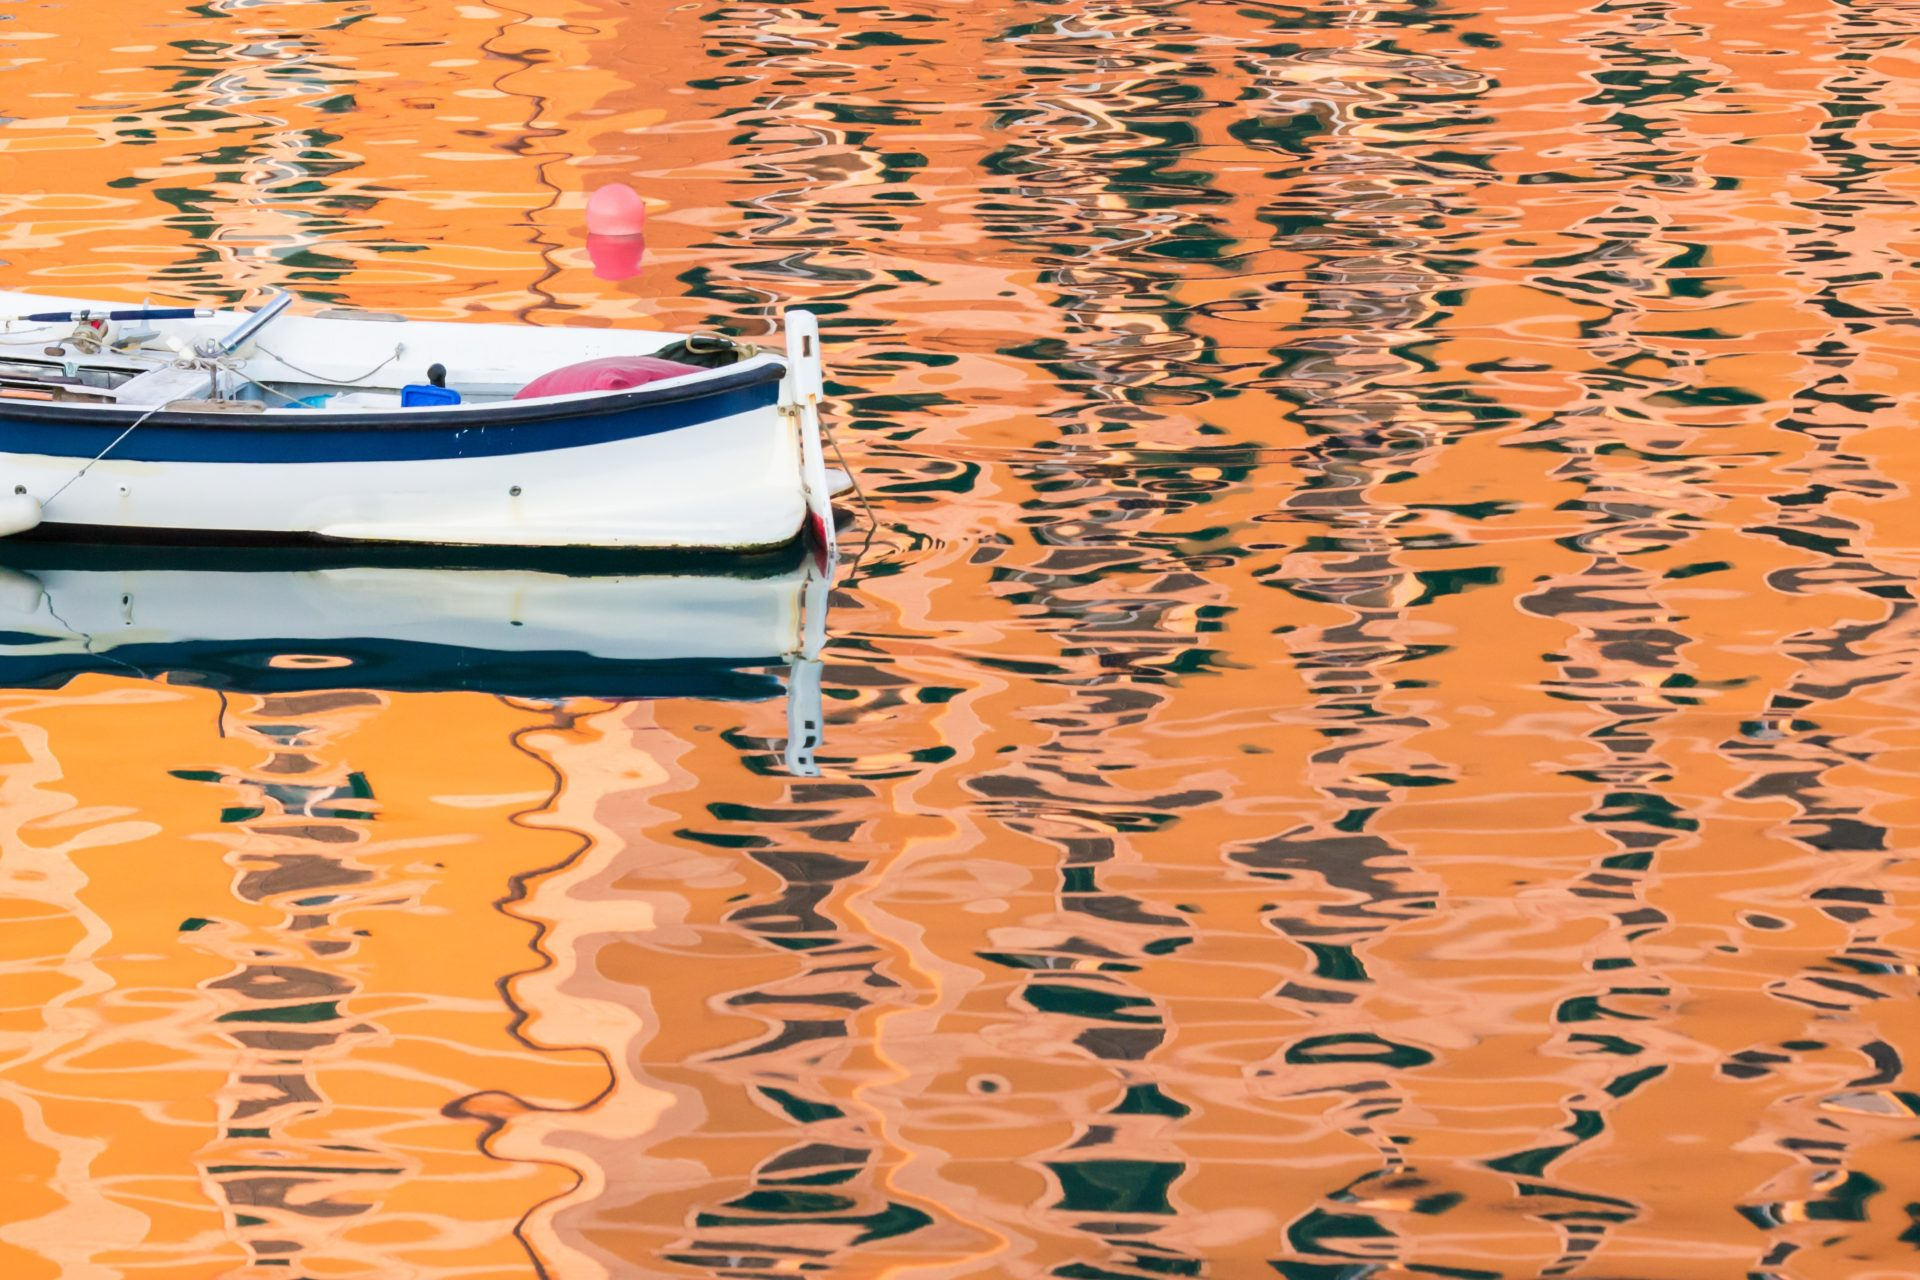 Canoe on Orange Reflective Water